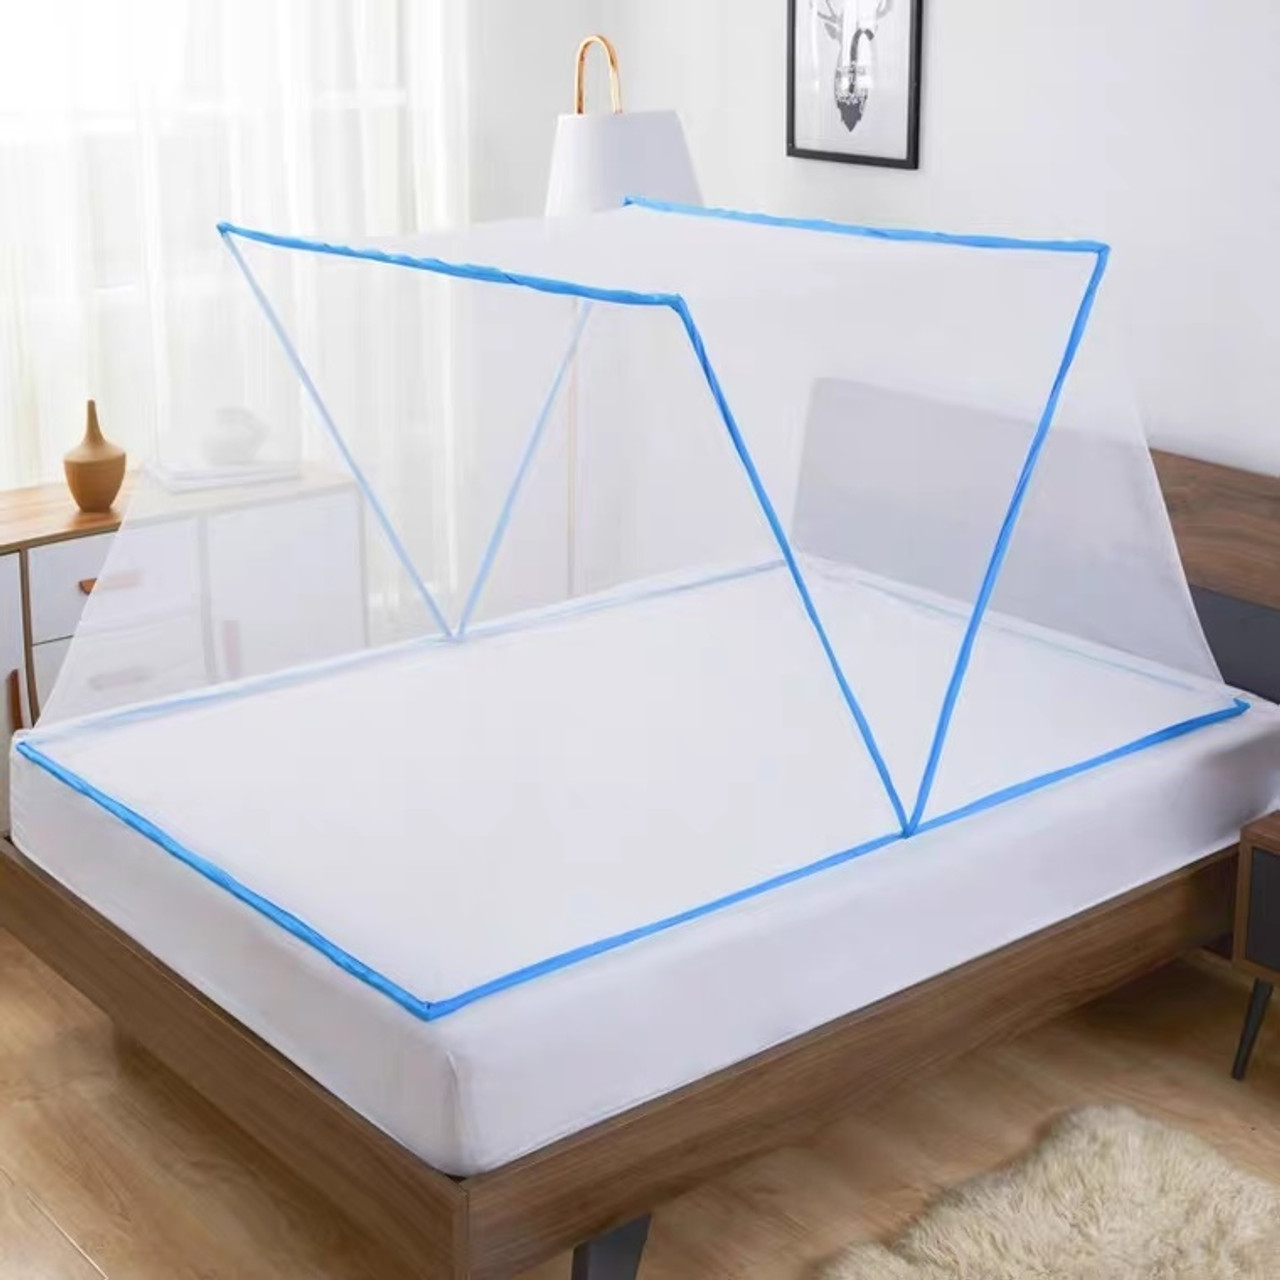 Mosquito Net Bed Canopy Tents Screen For Single To King Size Beds Blue Pink